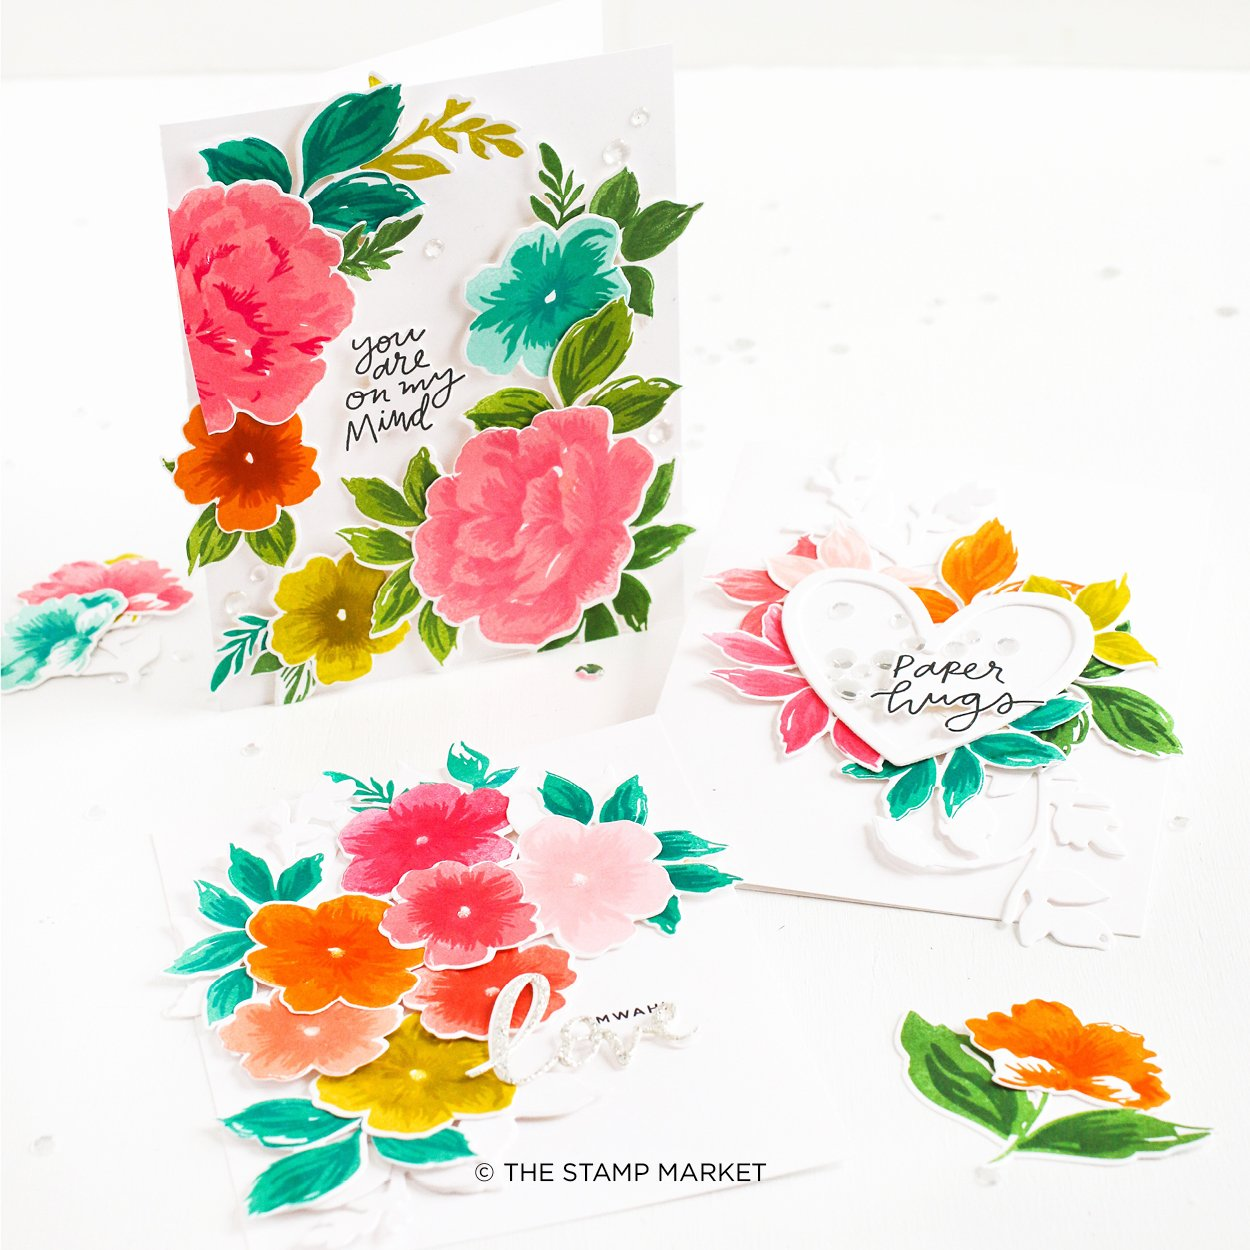 The Stamp Market セット♪ - Layered Rose